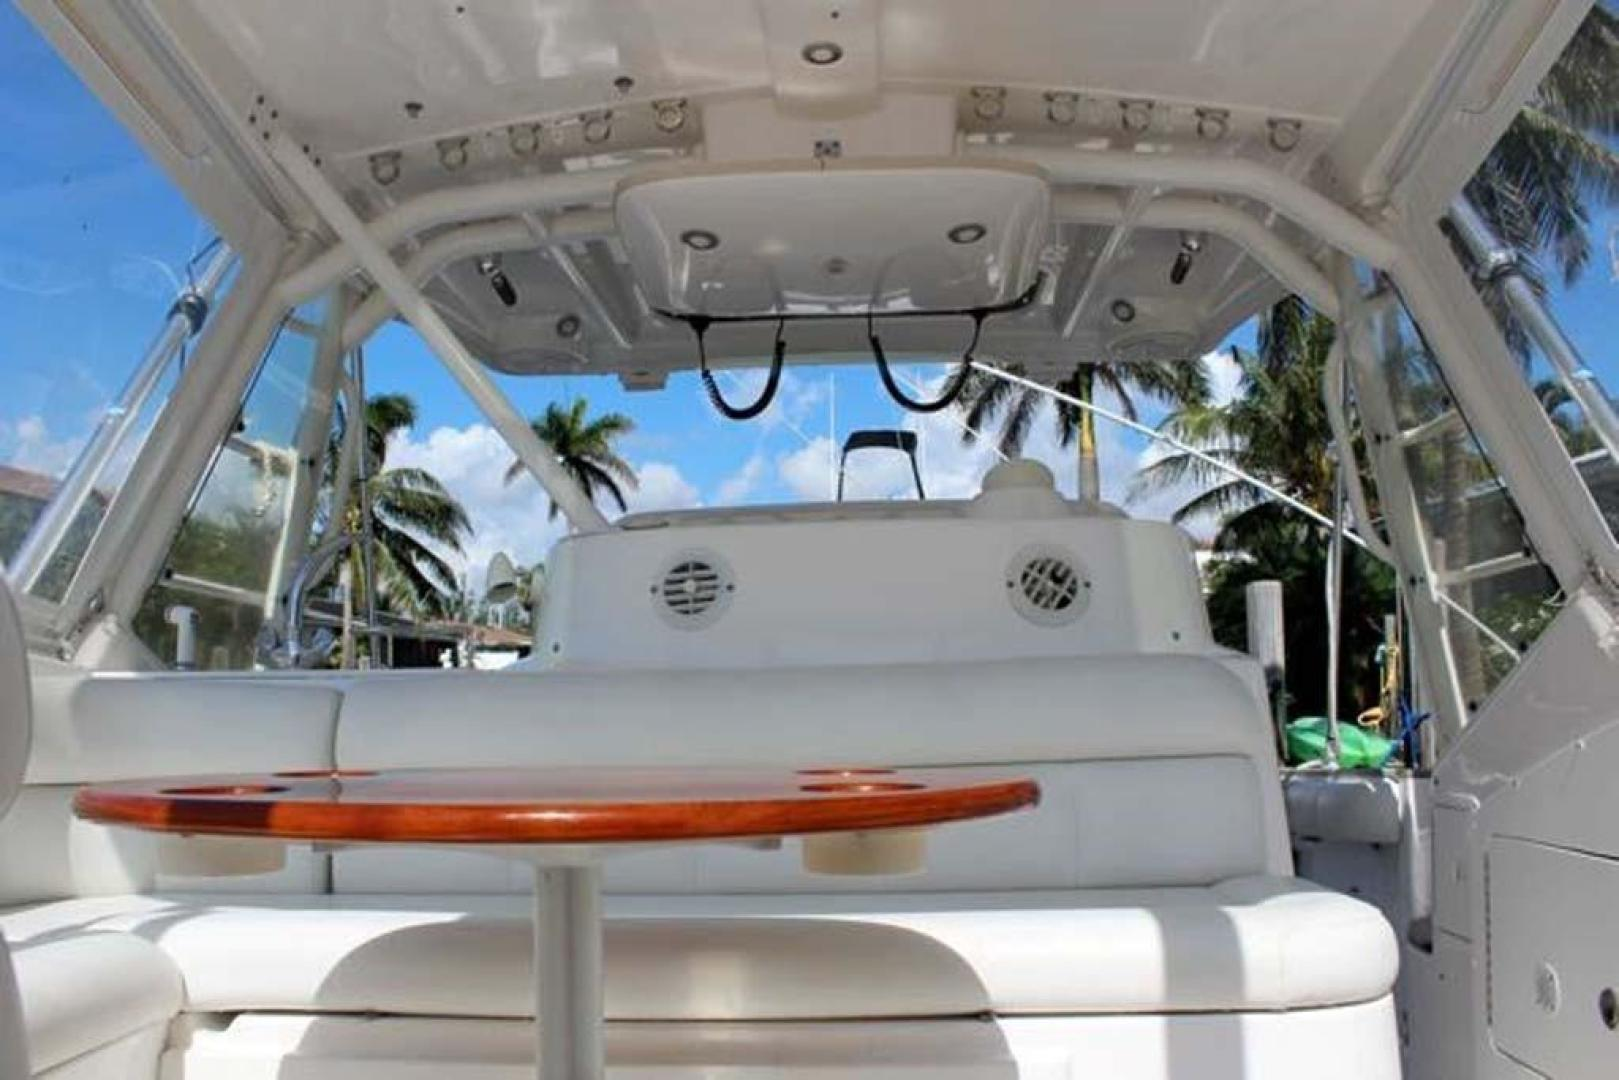 Everglades-35 LX NEW POWER 2010 -Delray Beach-Florida-United States-Fwd Table-923989 | Thumbnail